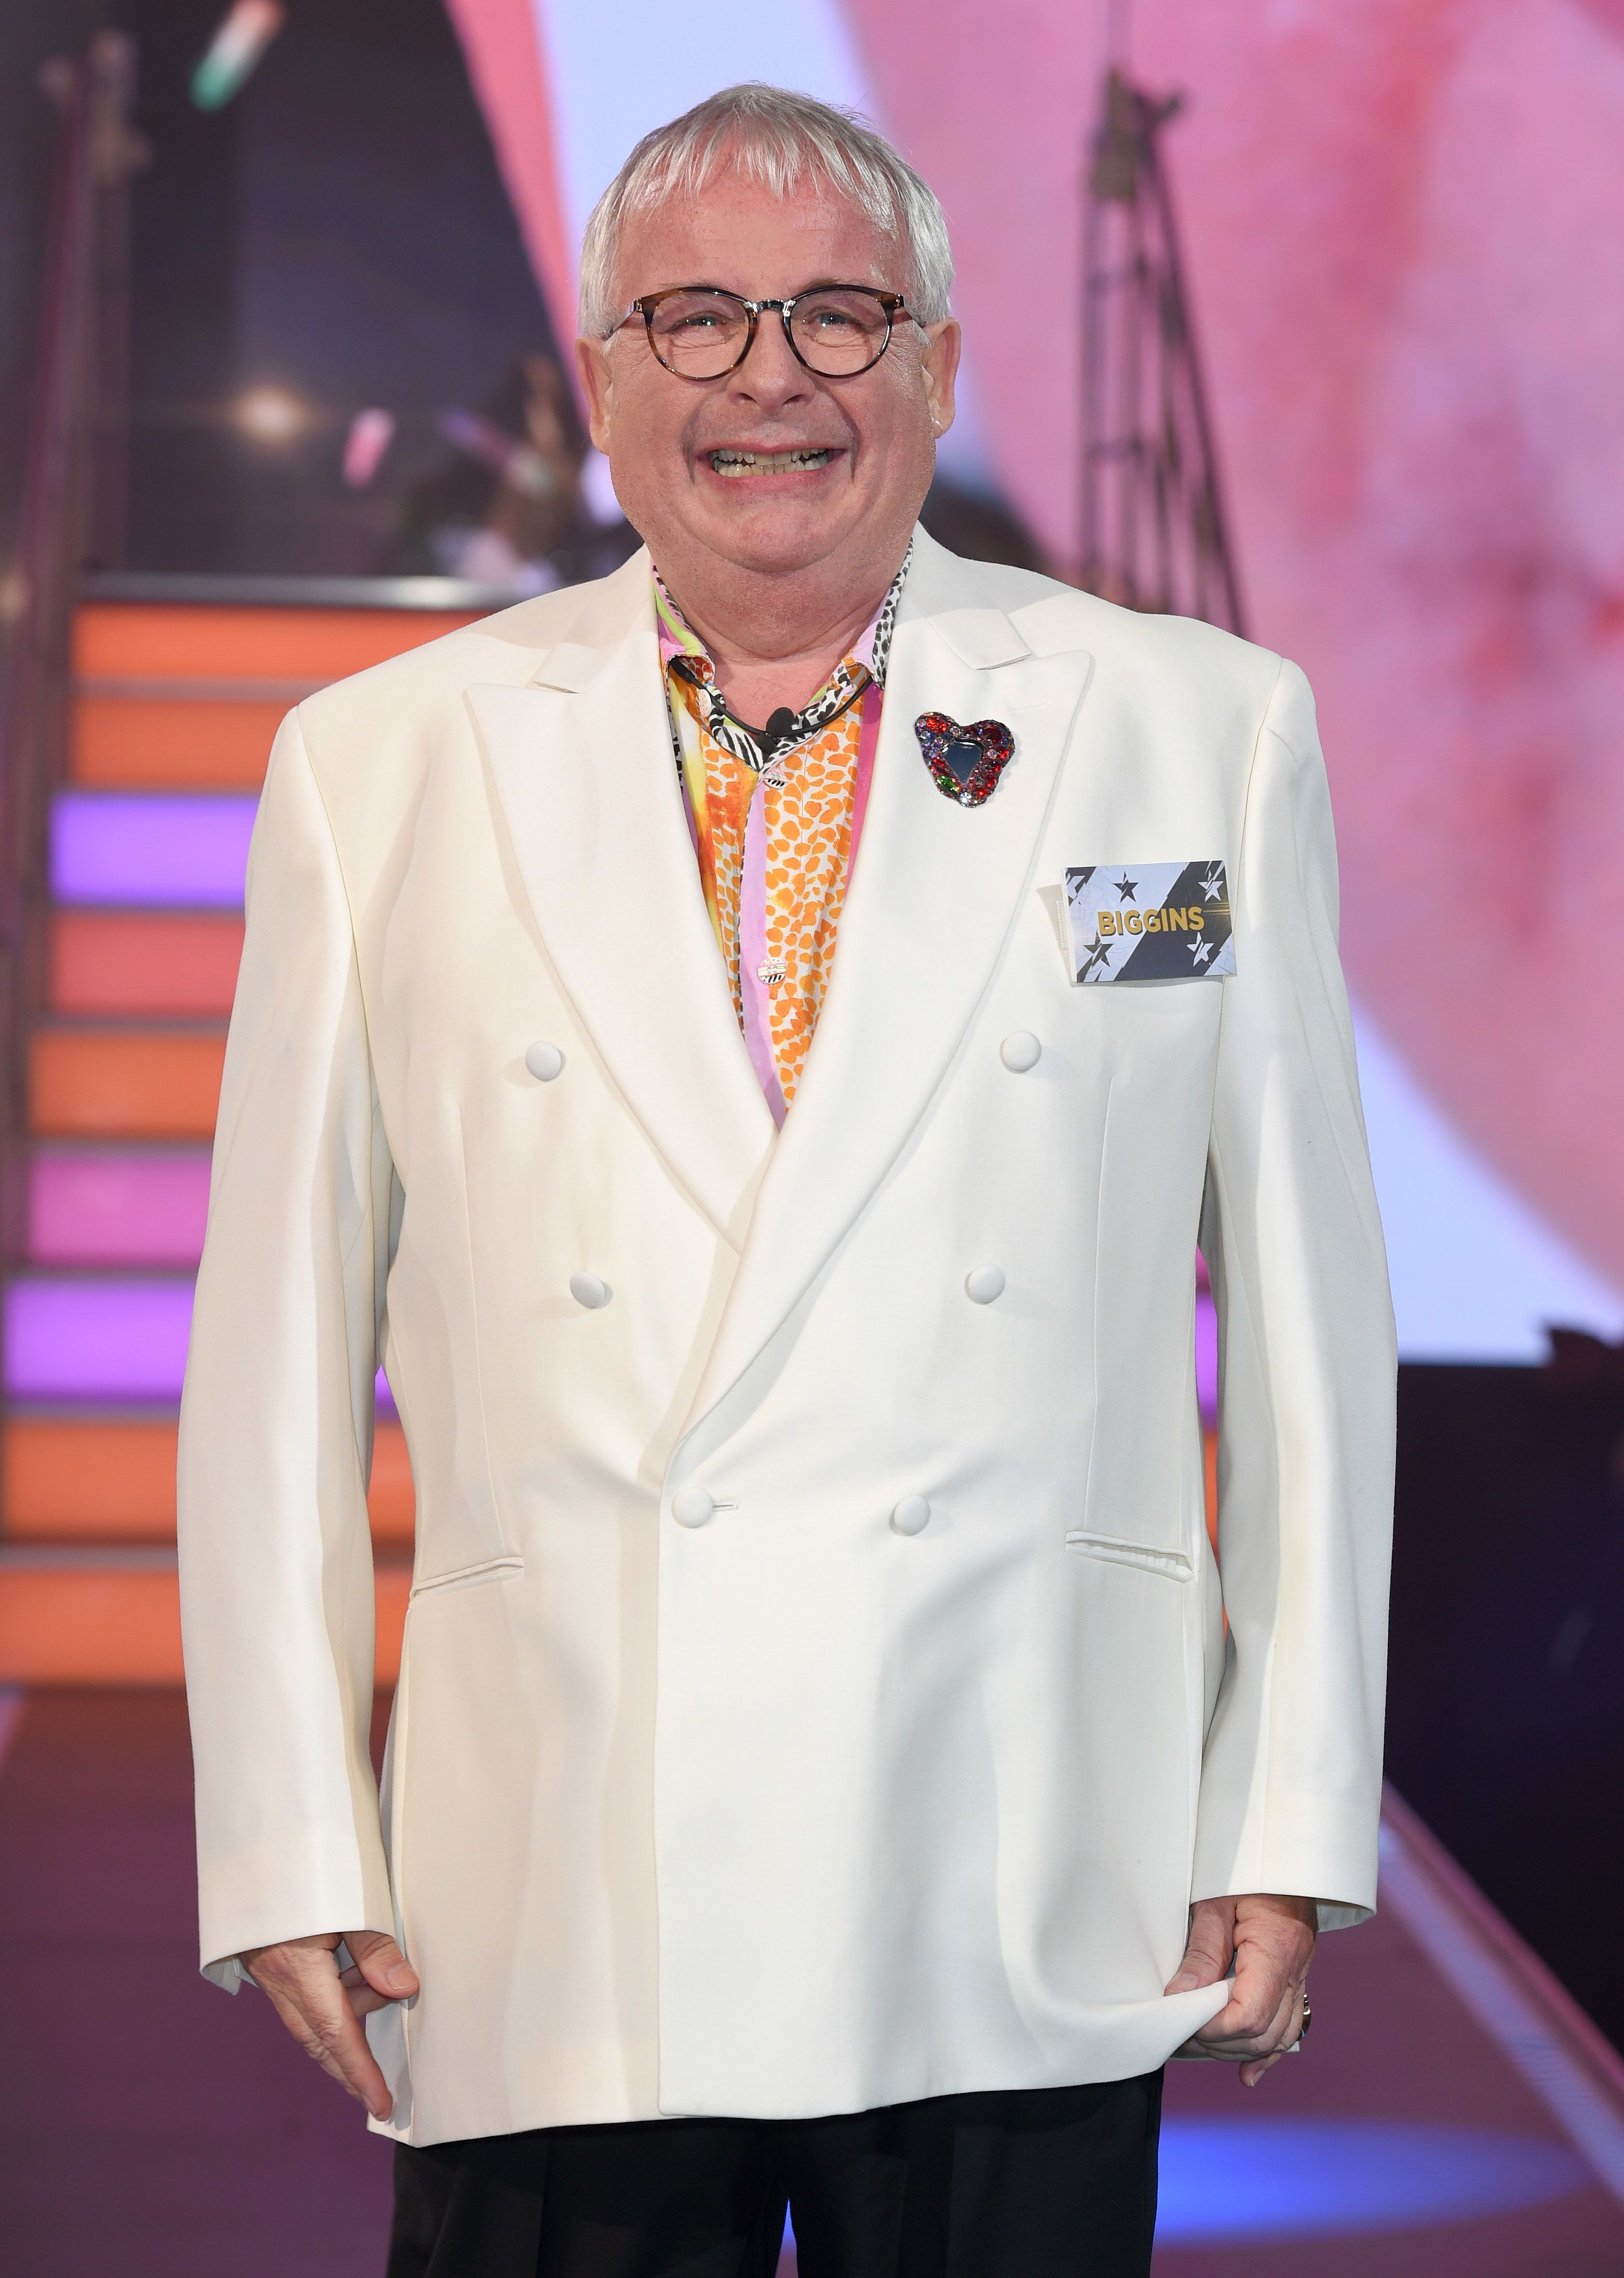 Channel 5 'Reaches Decision' Over Christopher Biggins' 'Celebrity Big Brother'